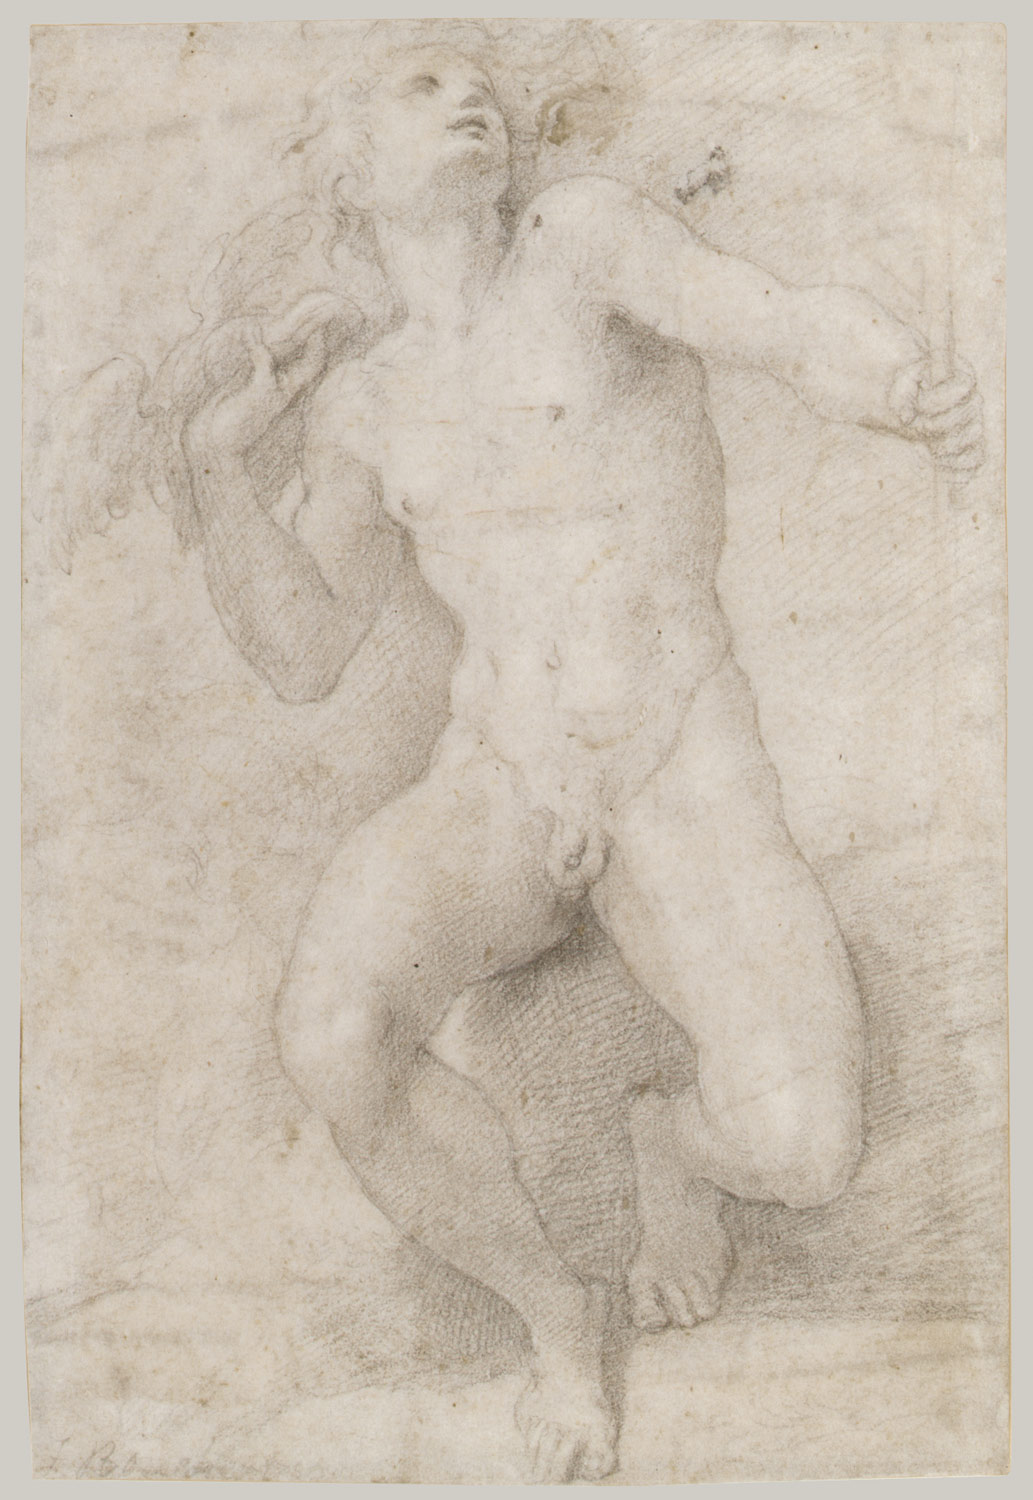 renaissance drawings material and function essay heilbrunn seated figure of mercury